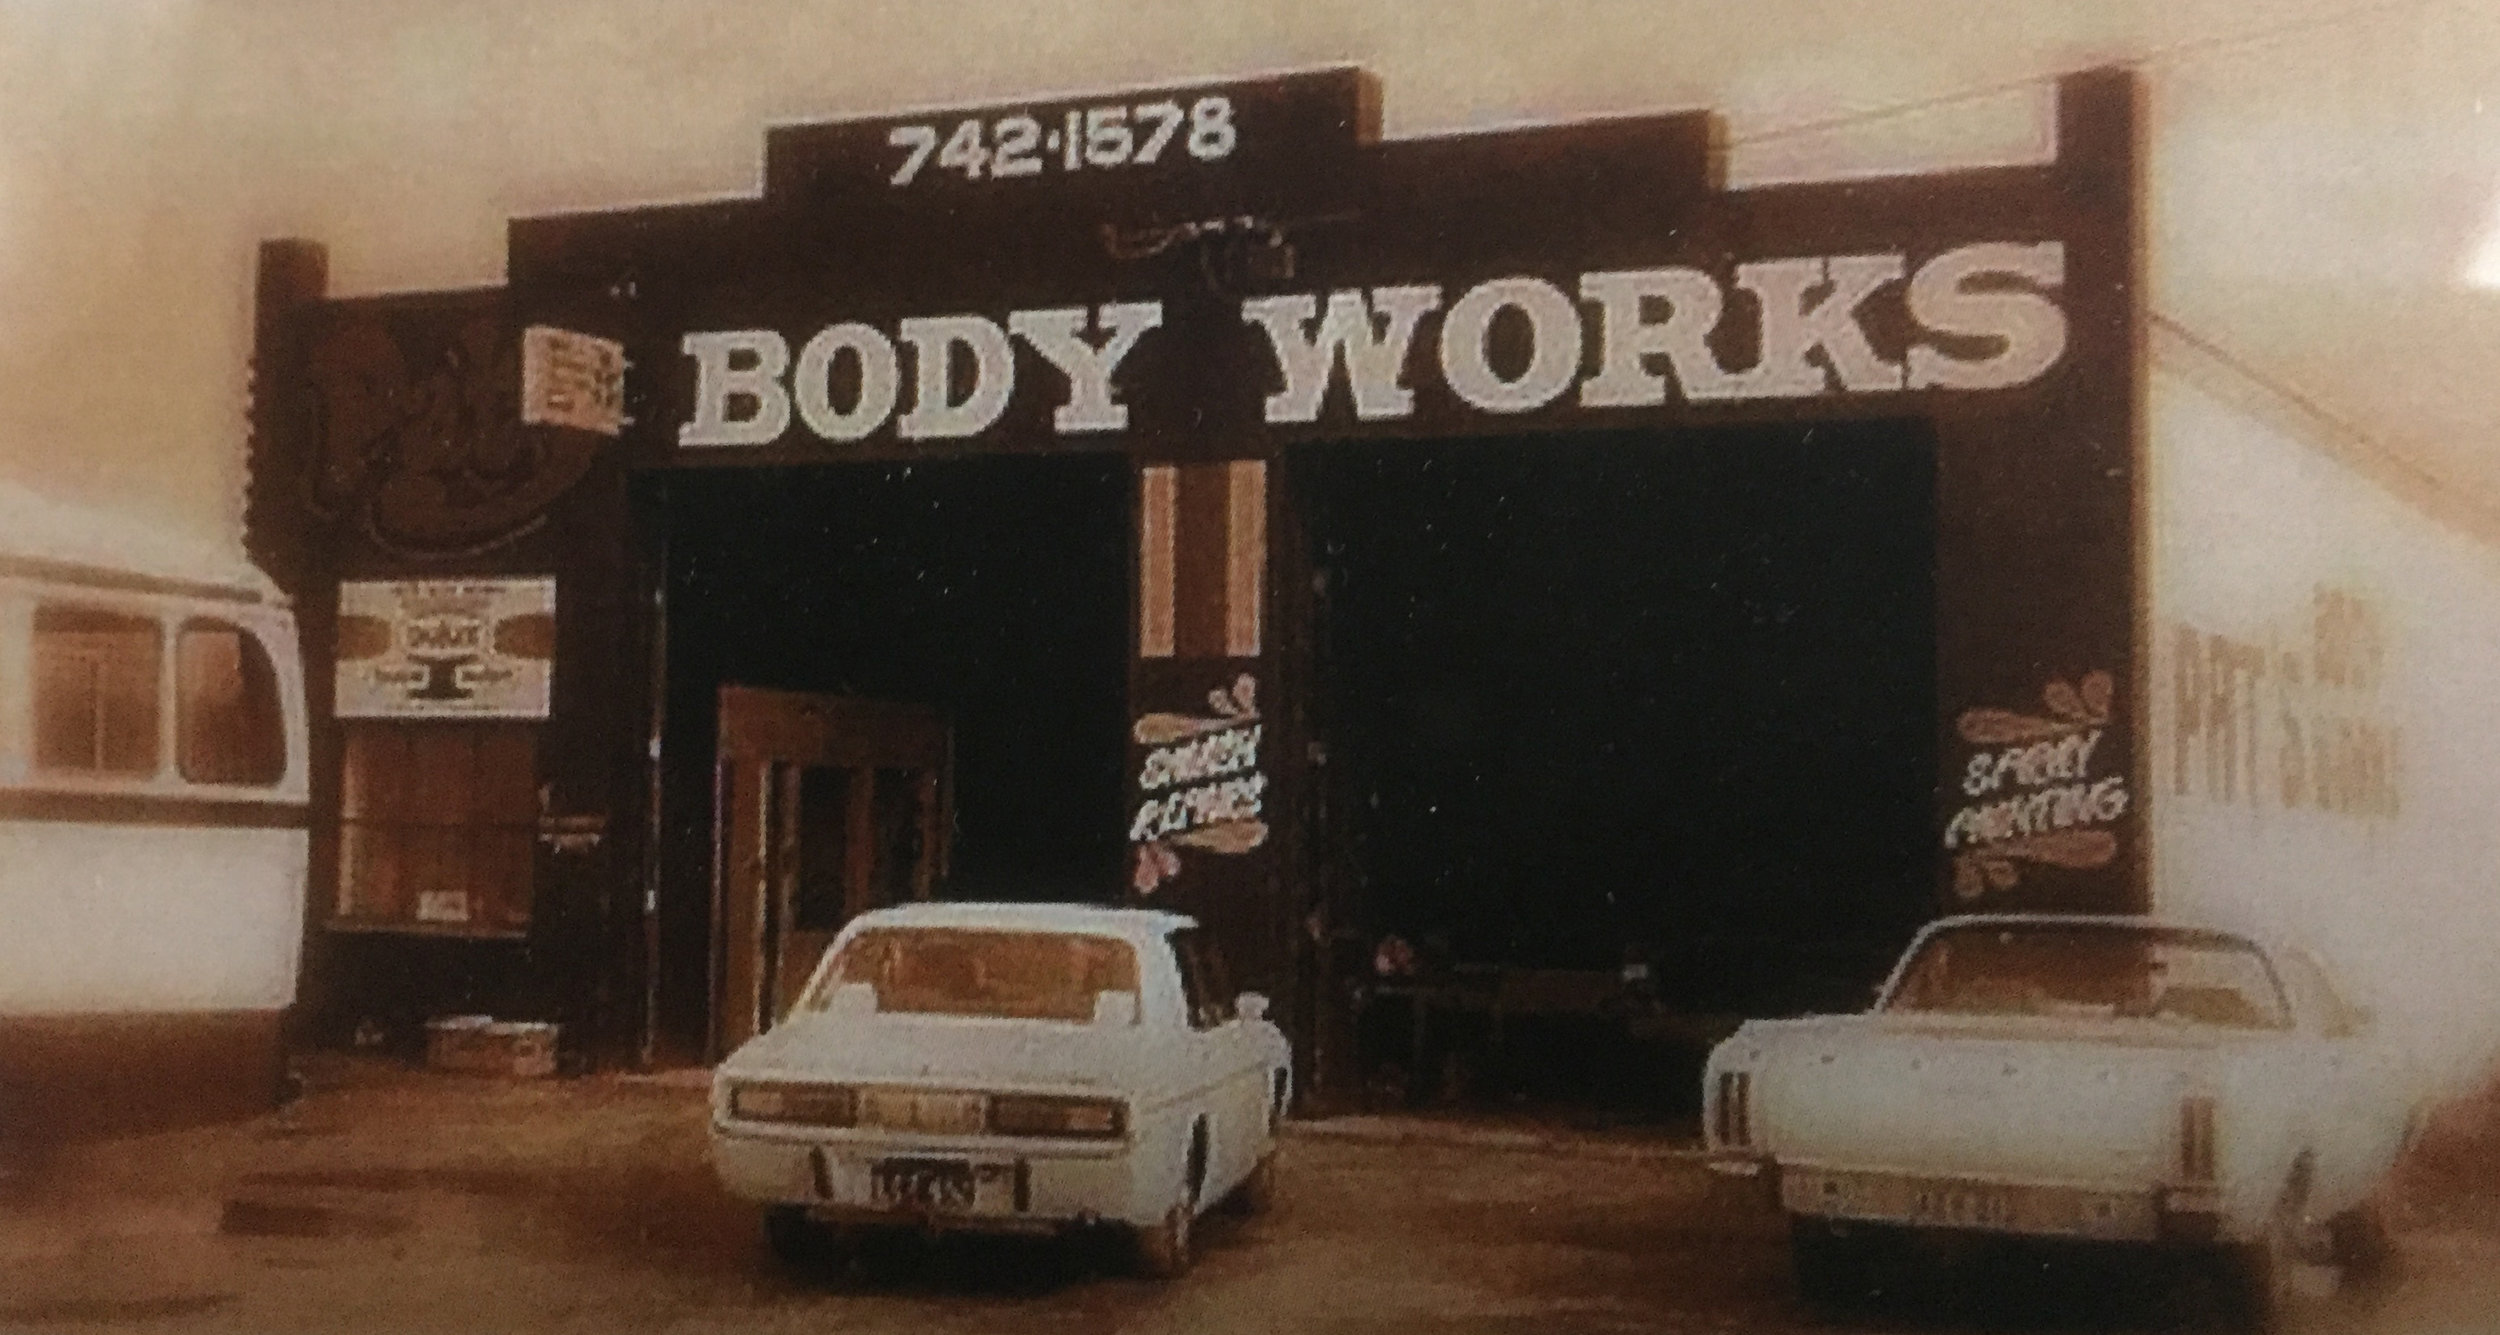 Pats Body Works Old Photo.jpg